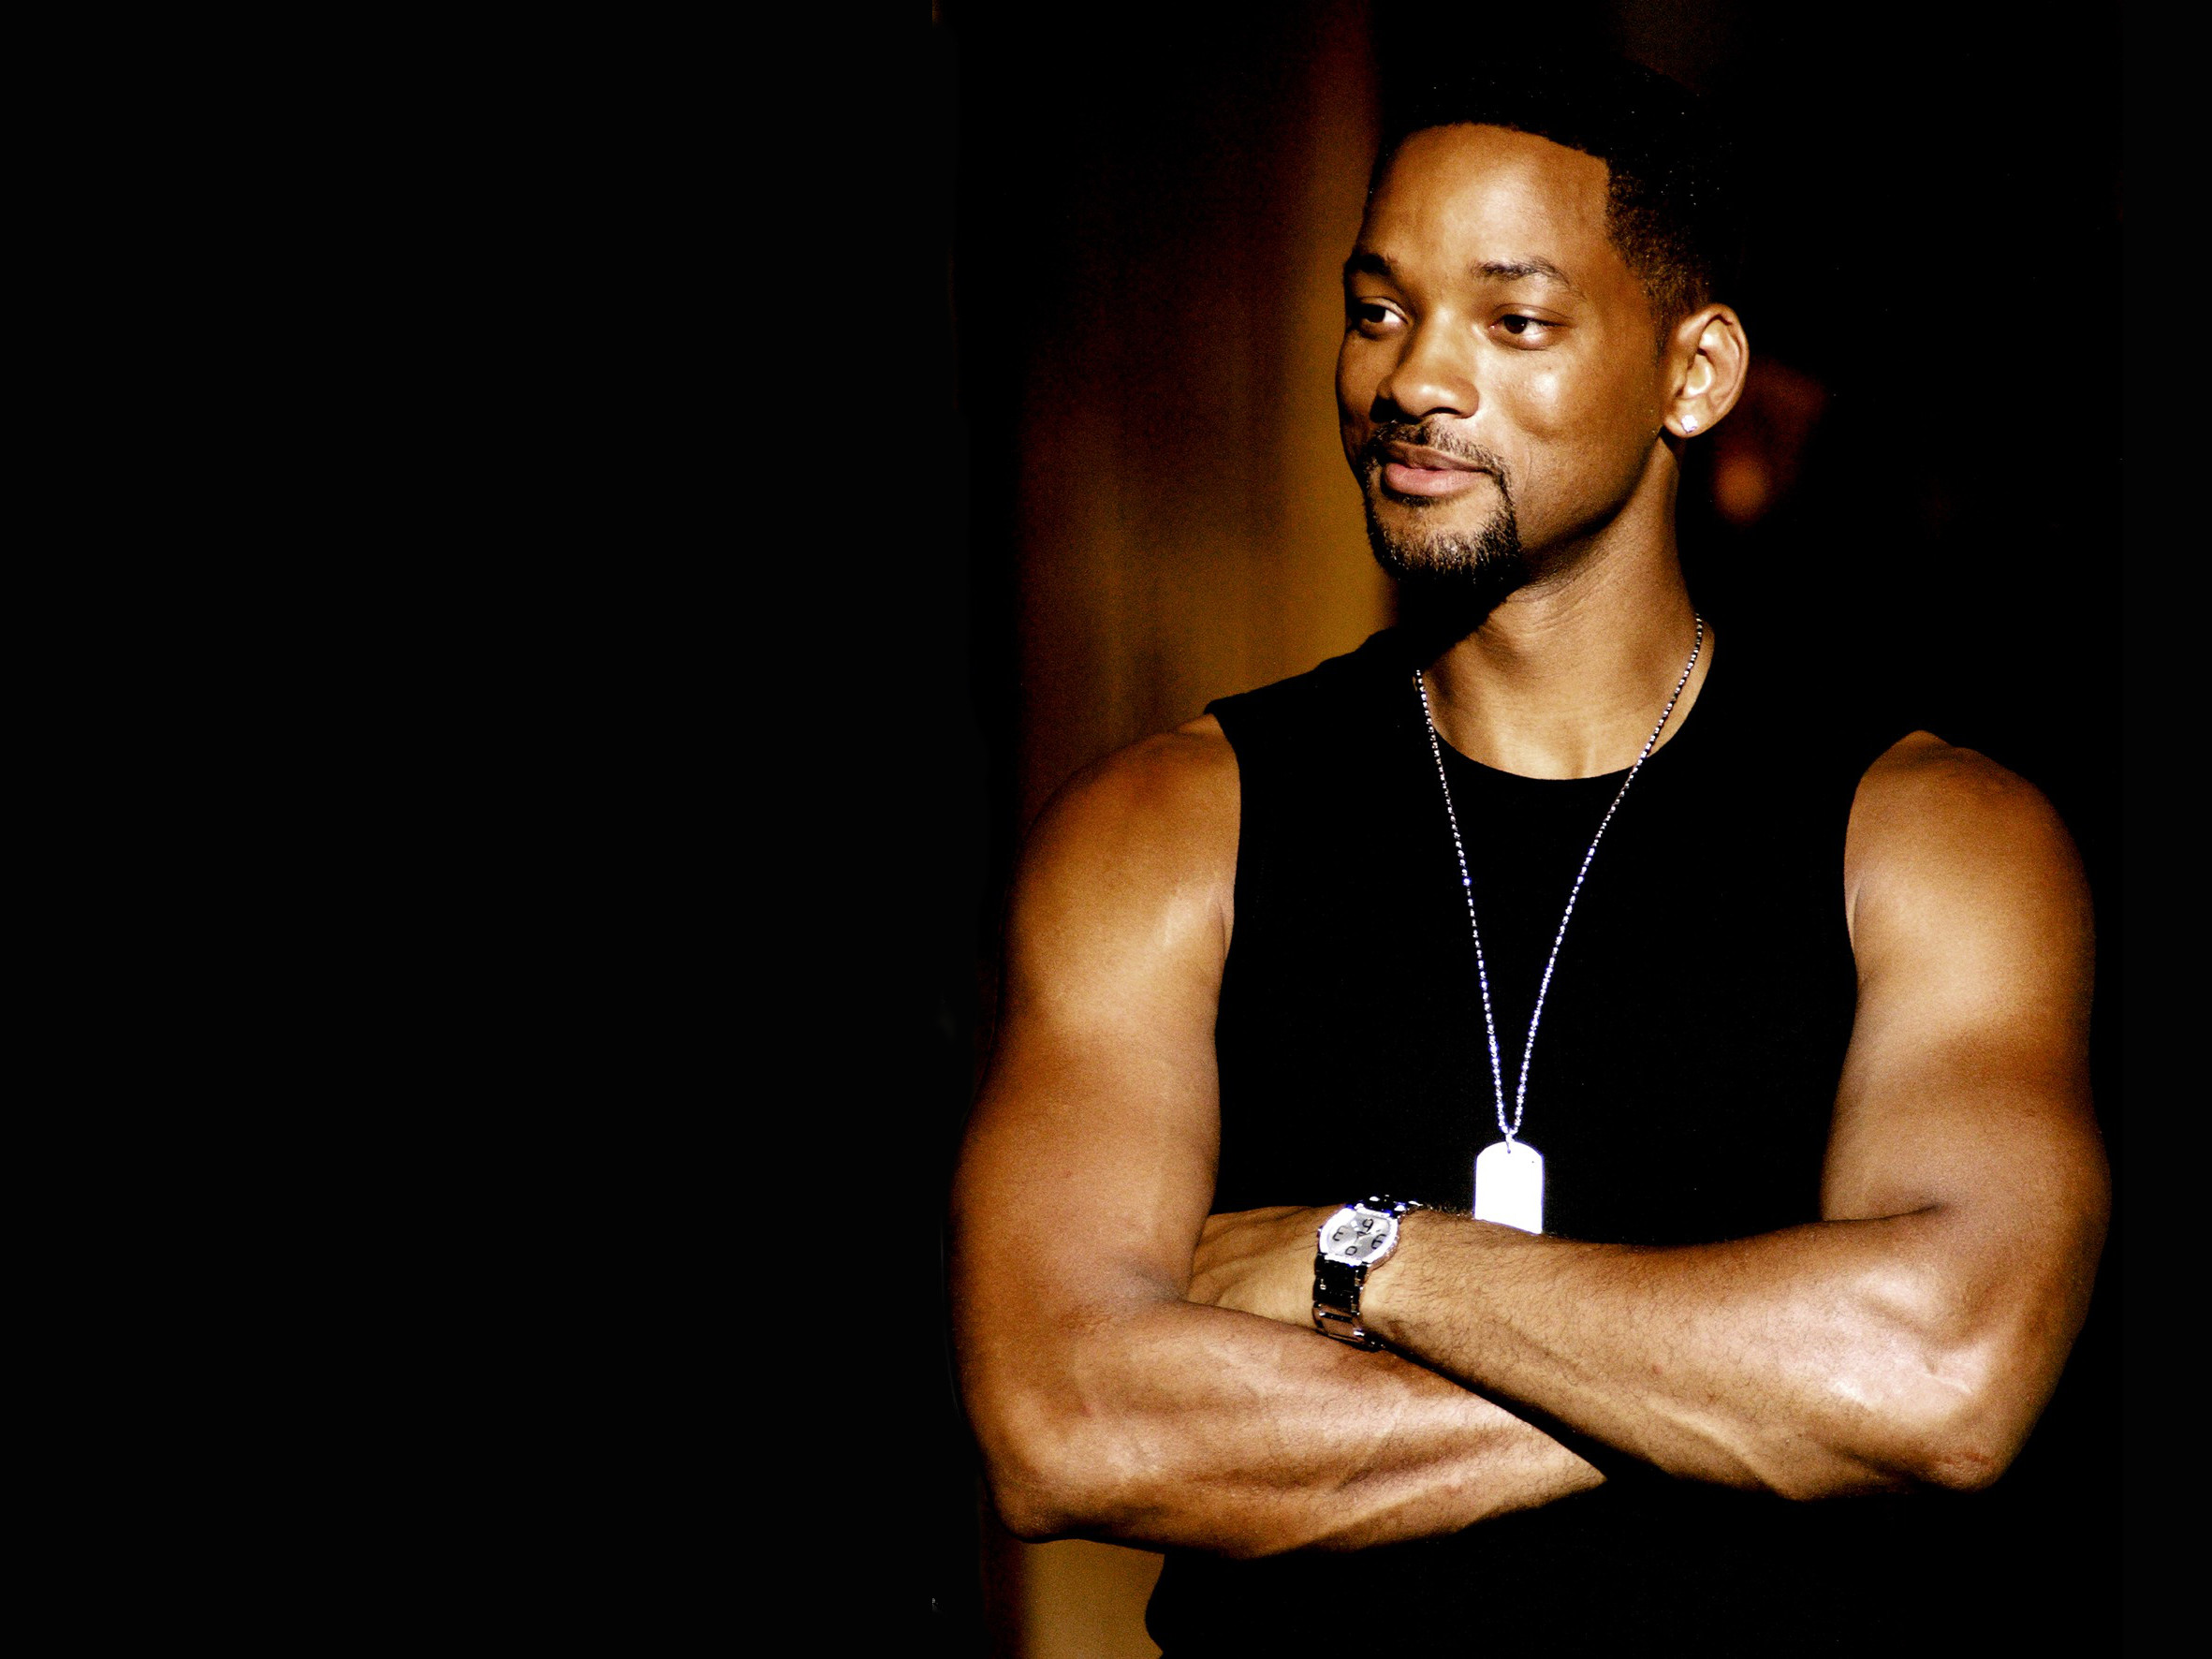 Will Smith Wallpapers 61 images 2363x1772